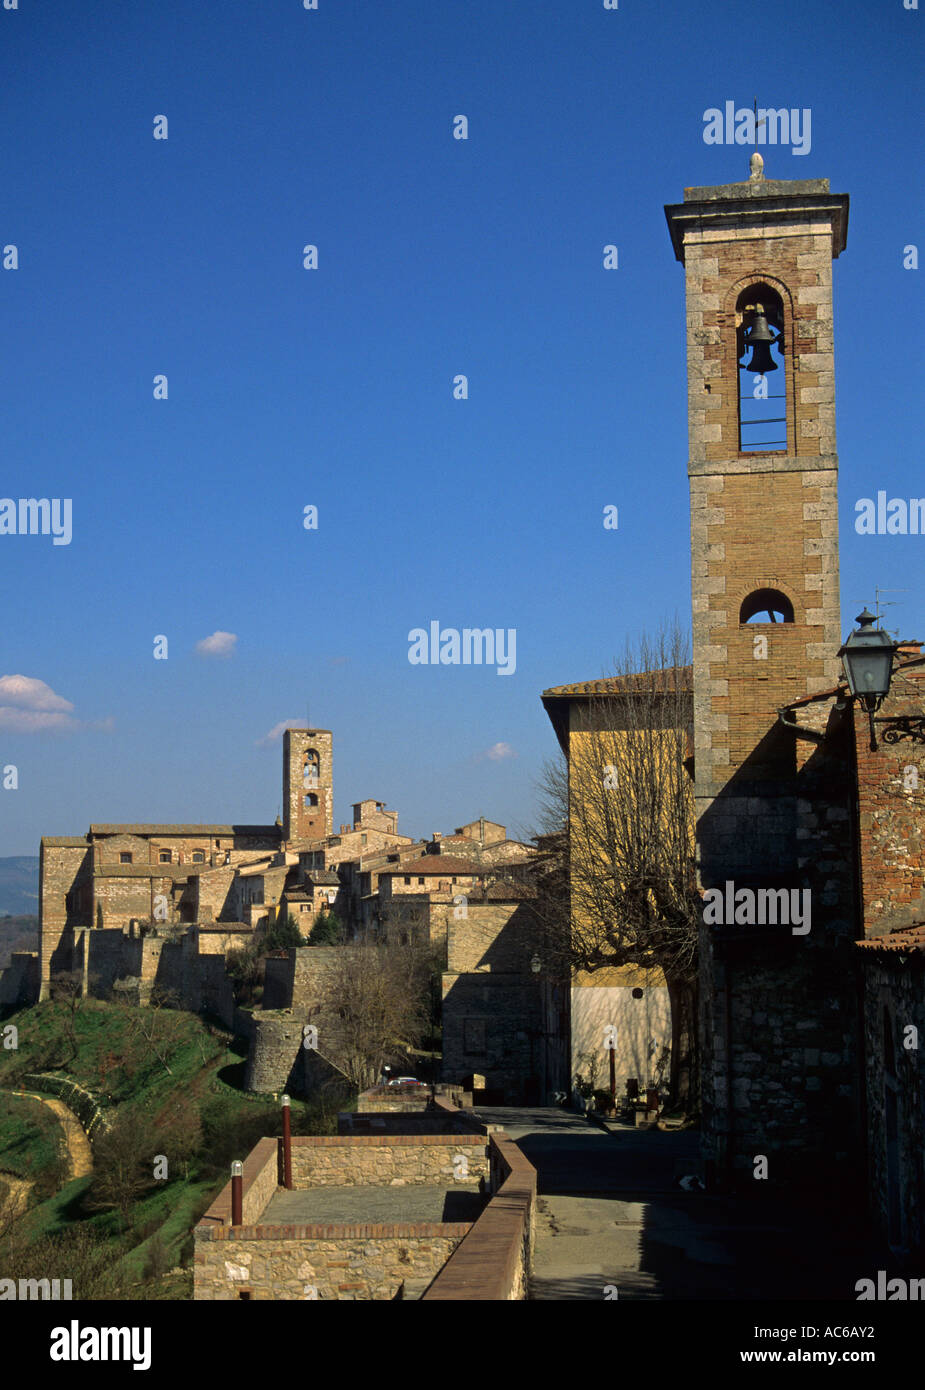 the hilltop town of Colle Val D Elsa Tuscany Italy - Stock Image